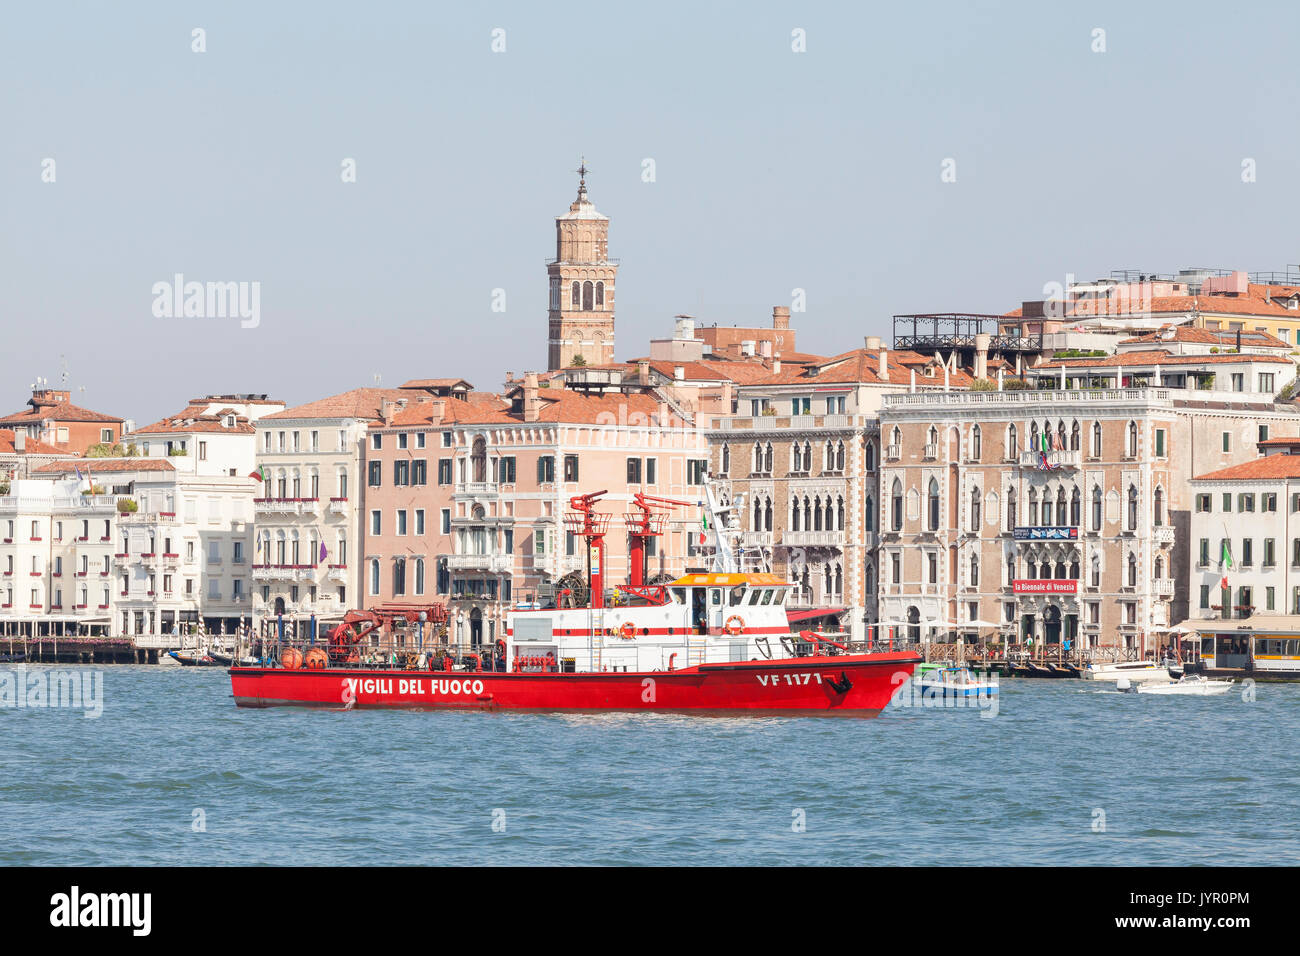 Venetian Vigili del Fuoco or firefighting boat in the Basino San Marco, Venice, Veneto, Italy in front of ancient palazzos. This bright red tender man - Stock Image